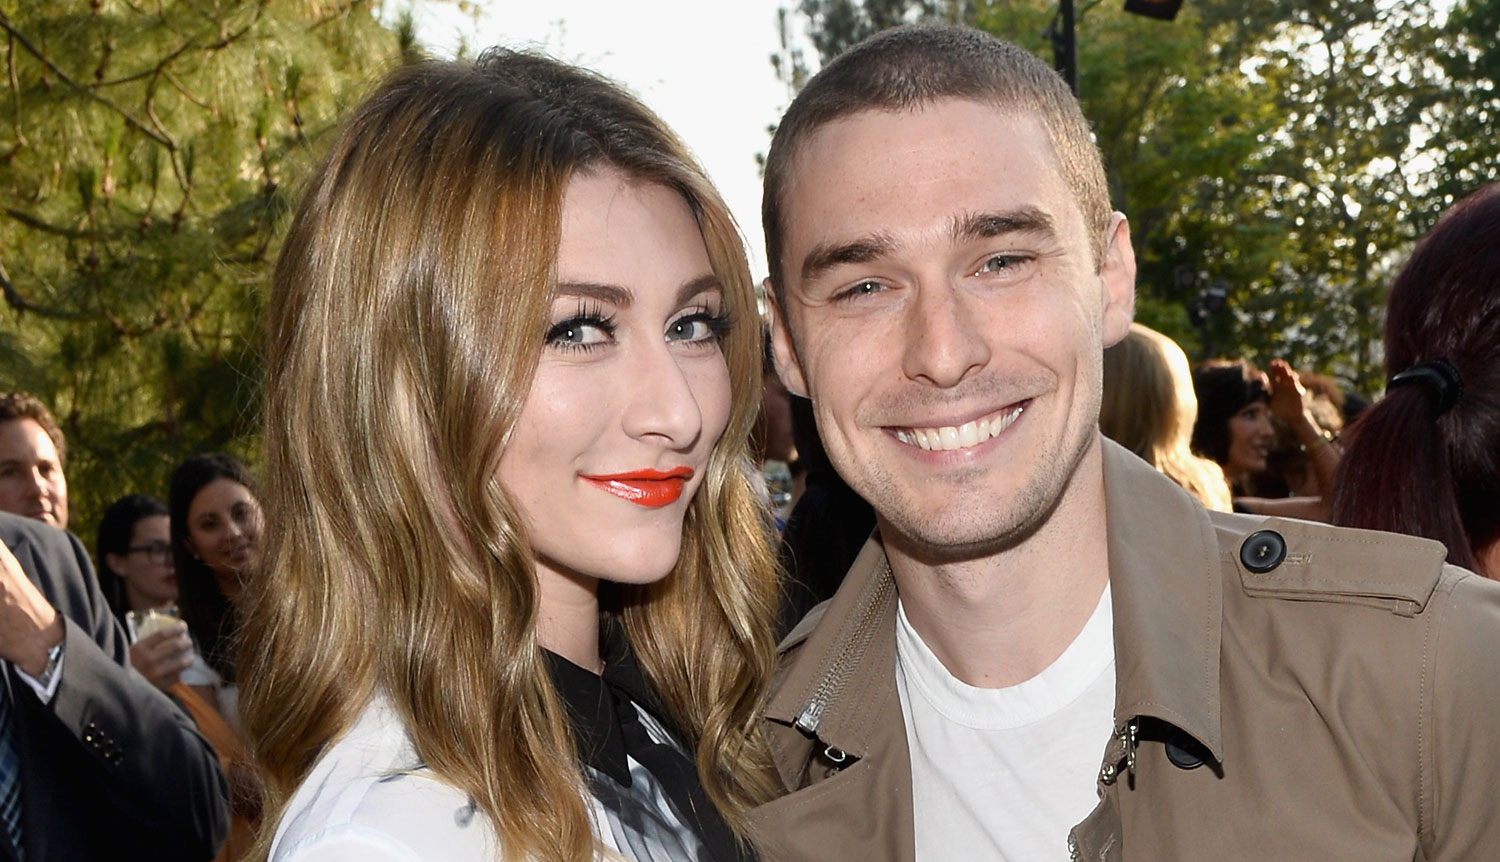 are amy and nick of karmin dating